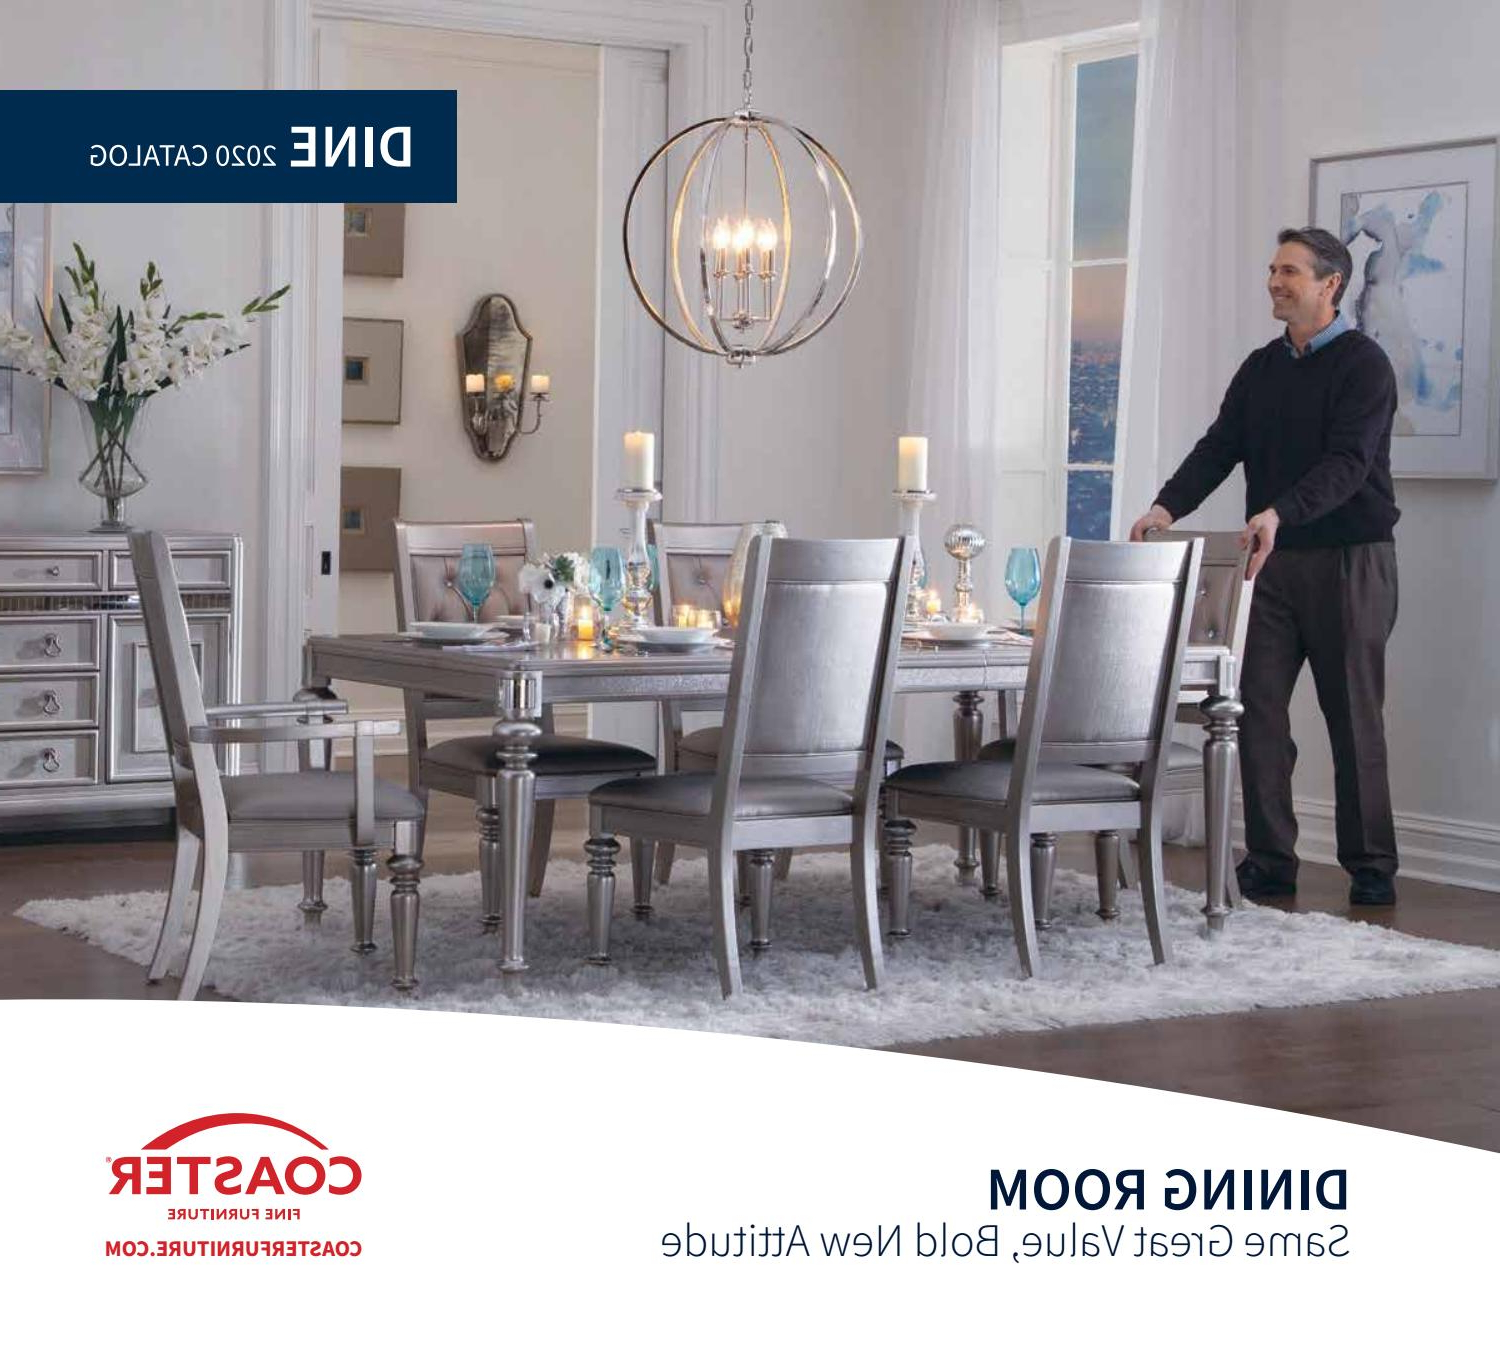 2020 Coaster Catalog Dinecoaster Company Of America – Issuu For Recent Frosted Glass Modern Dining Tables With Grey Finish Metal Tapered Legs (View 15 of 30)